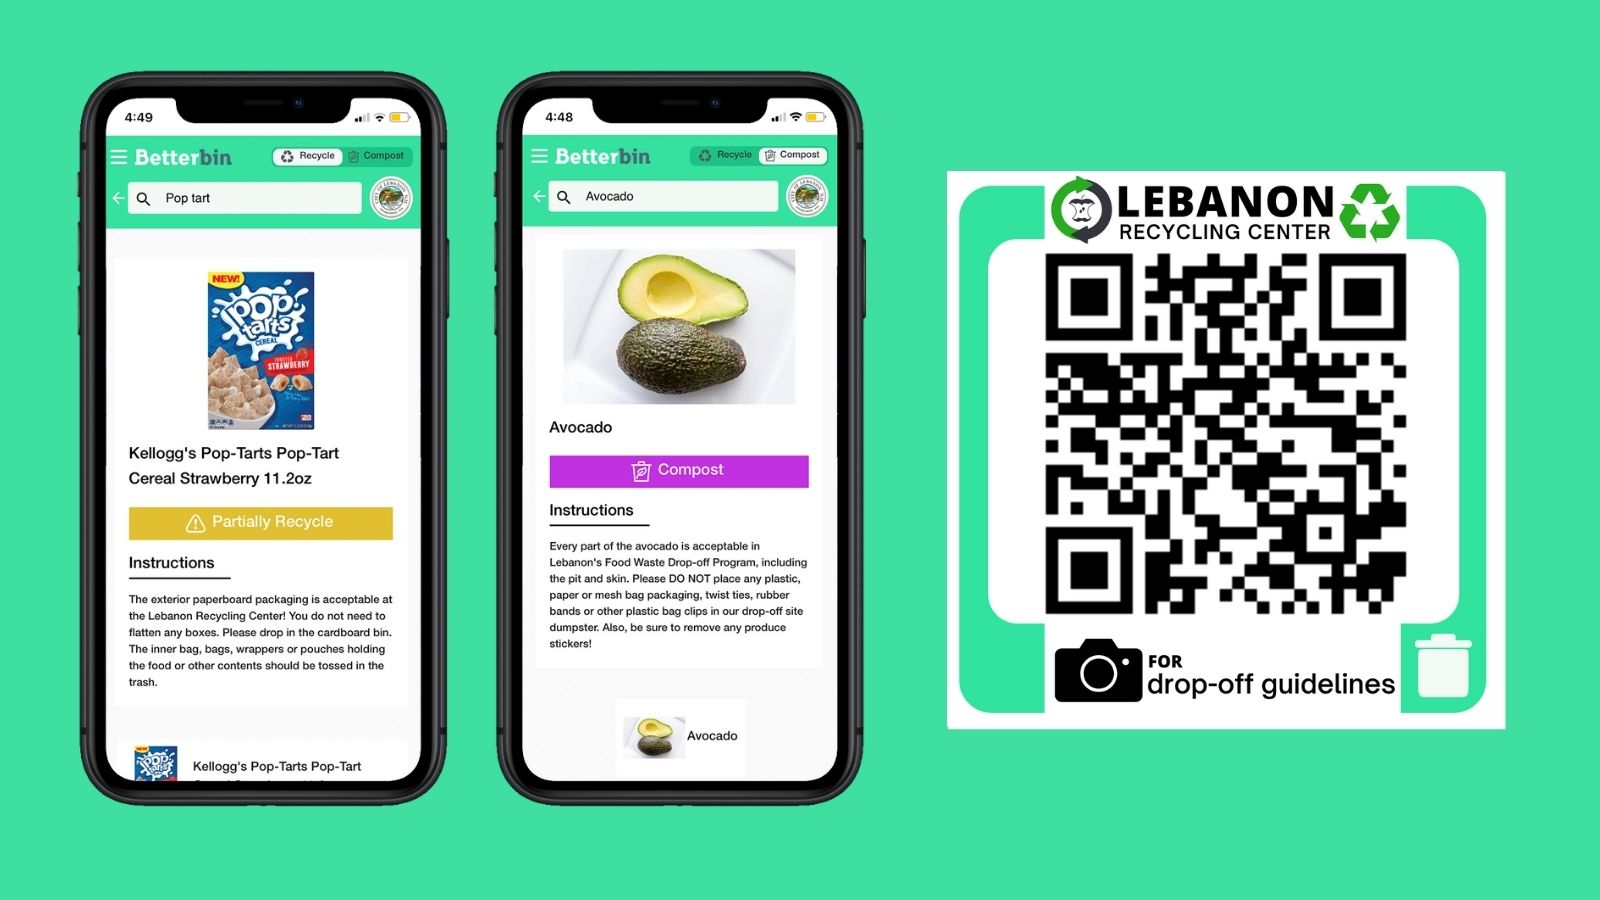 screenshots of betterbin app on mobile devices with QR code to scan